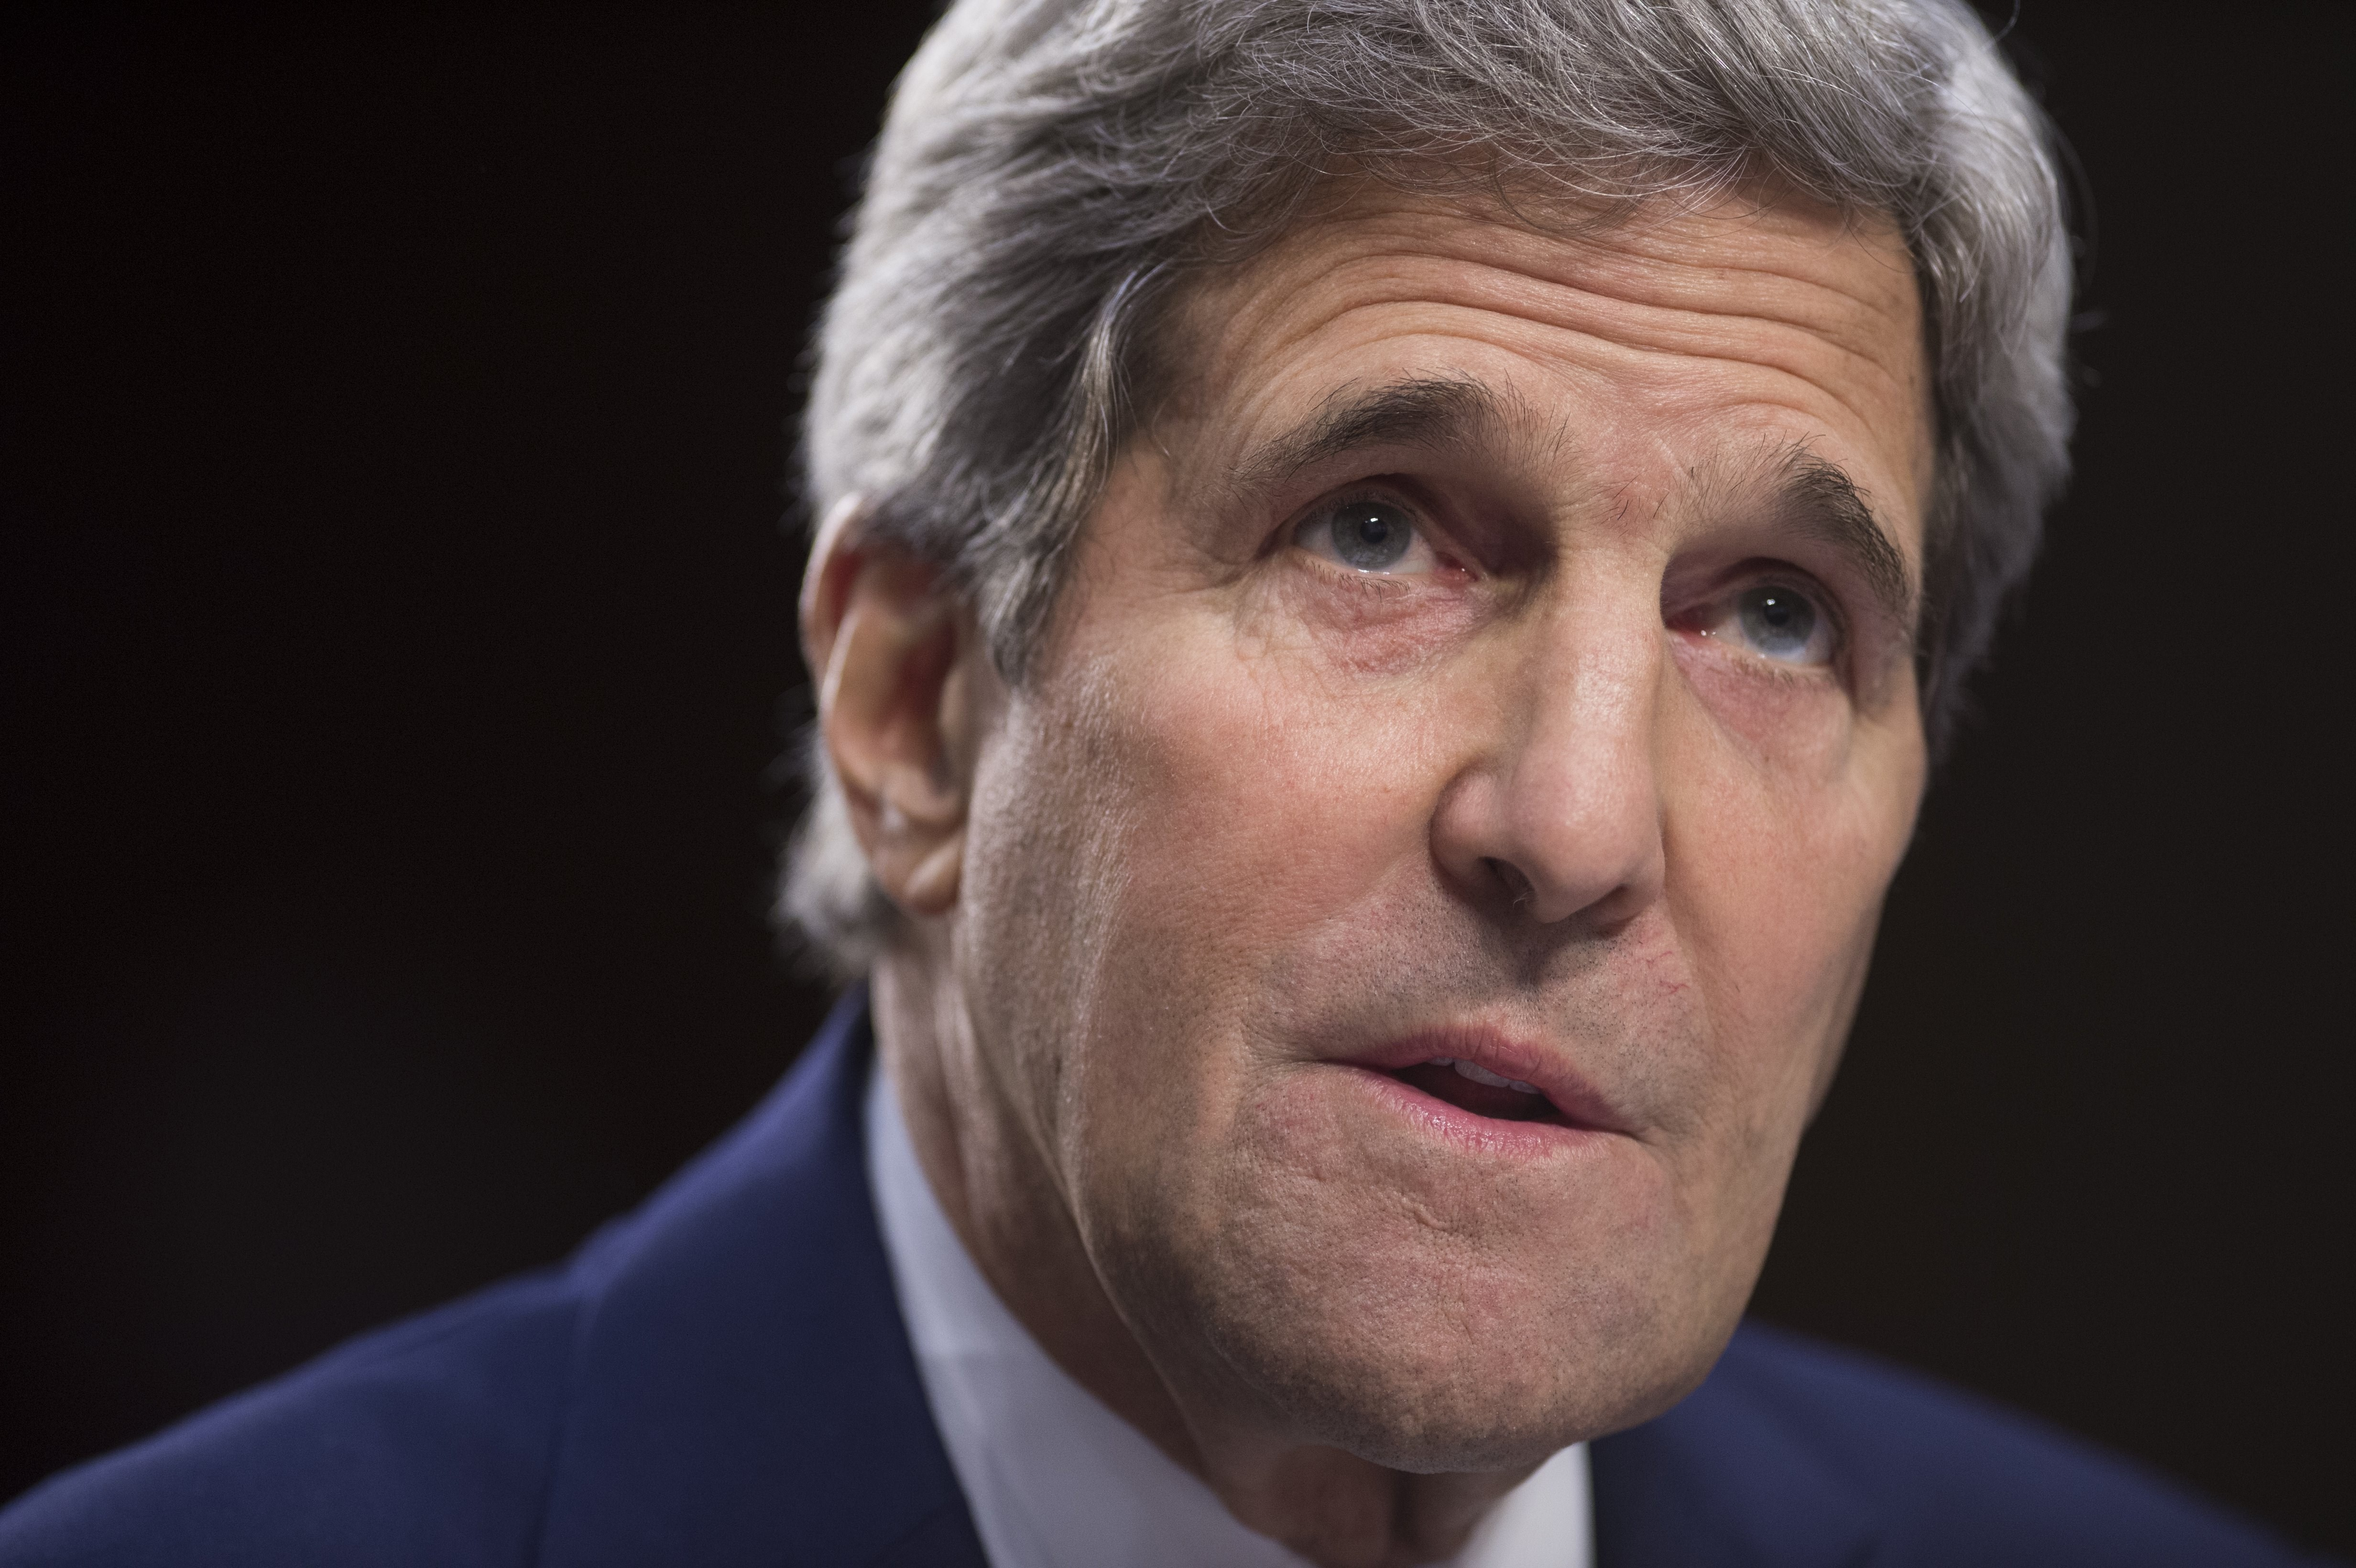 US Secretary of State John Kerry testifies about US policy towards Iraq and Syria and the threat posed by the Islamic State Group (IS) during a Senate Foreign Relations Committee hearing on Capitol Hill in Washington on Sept. 17, 2014.